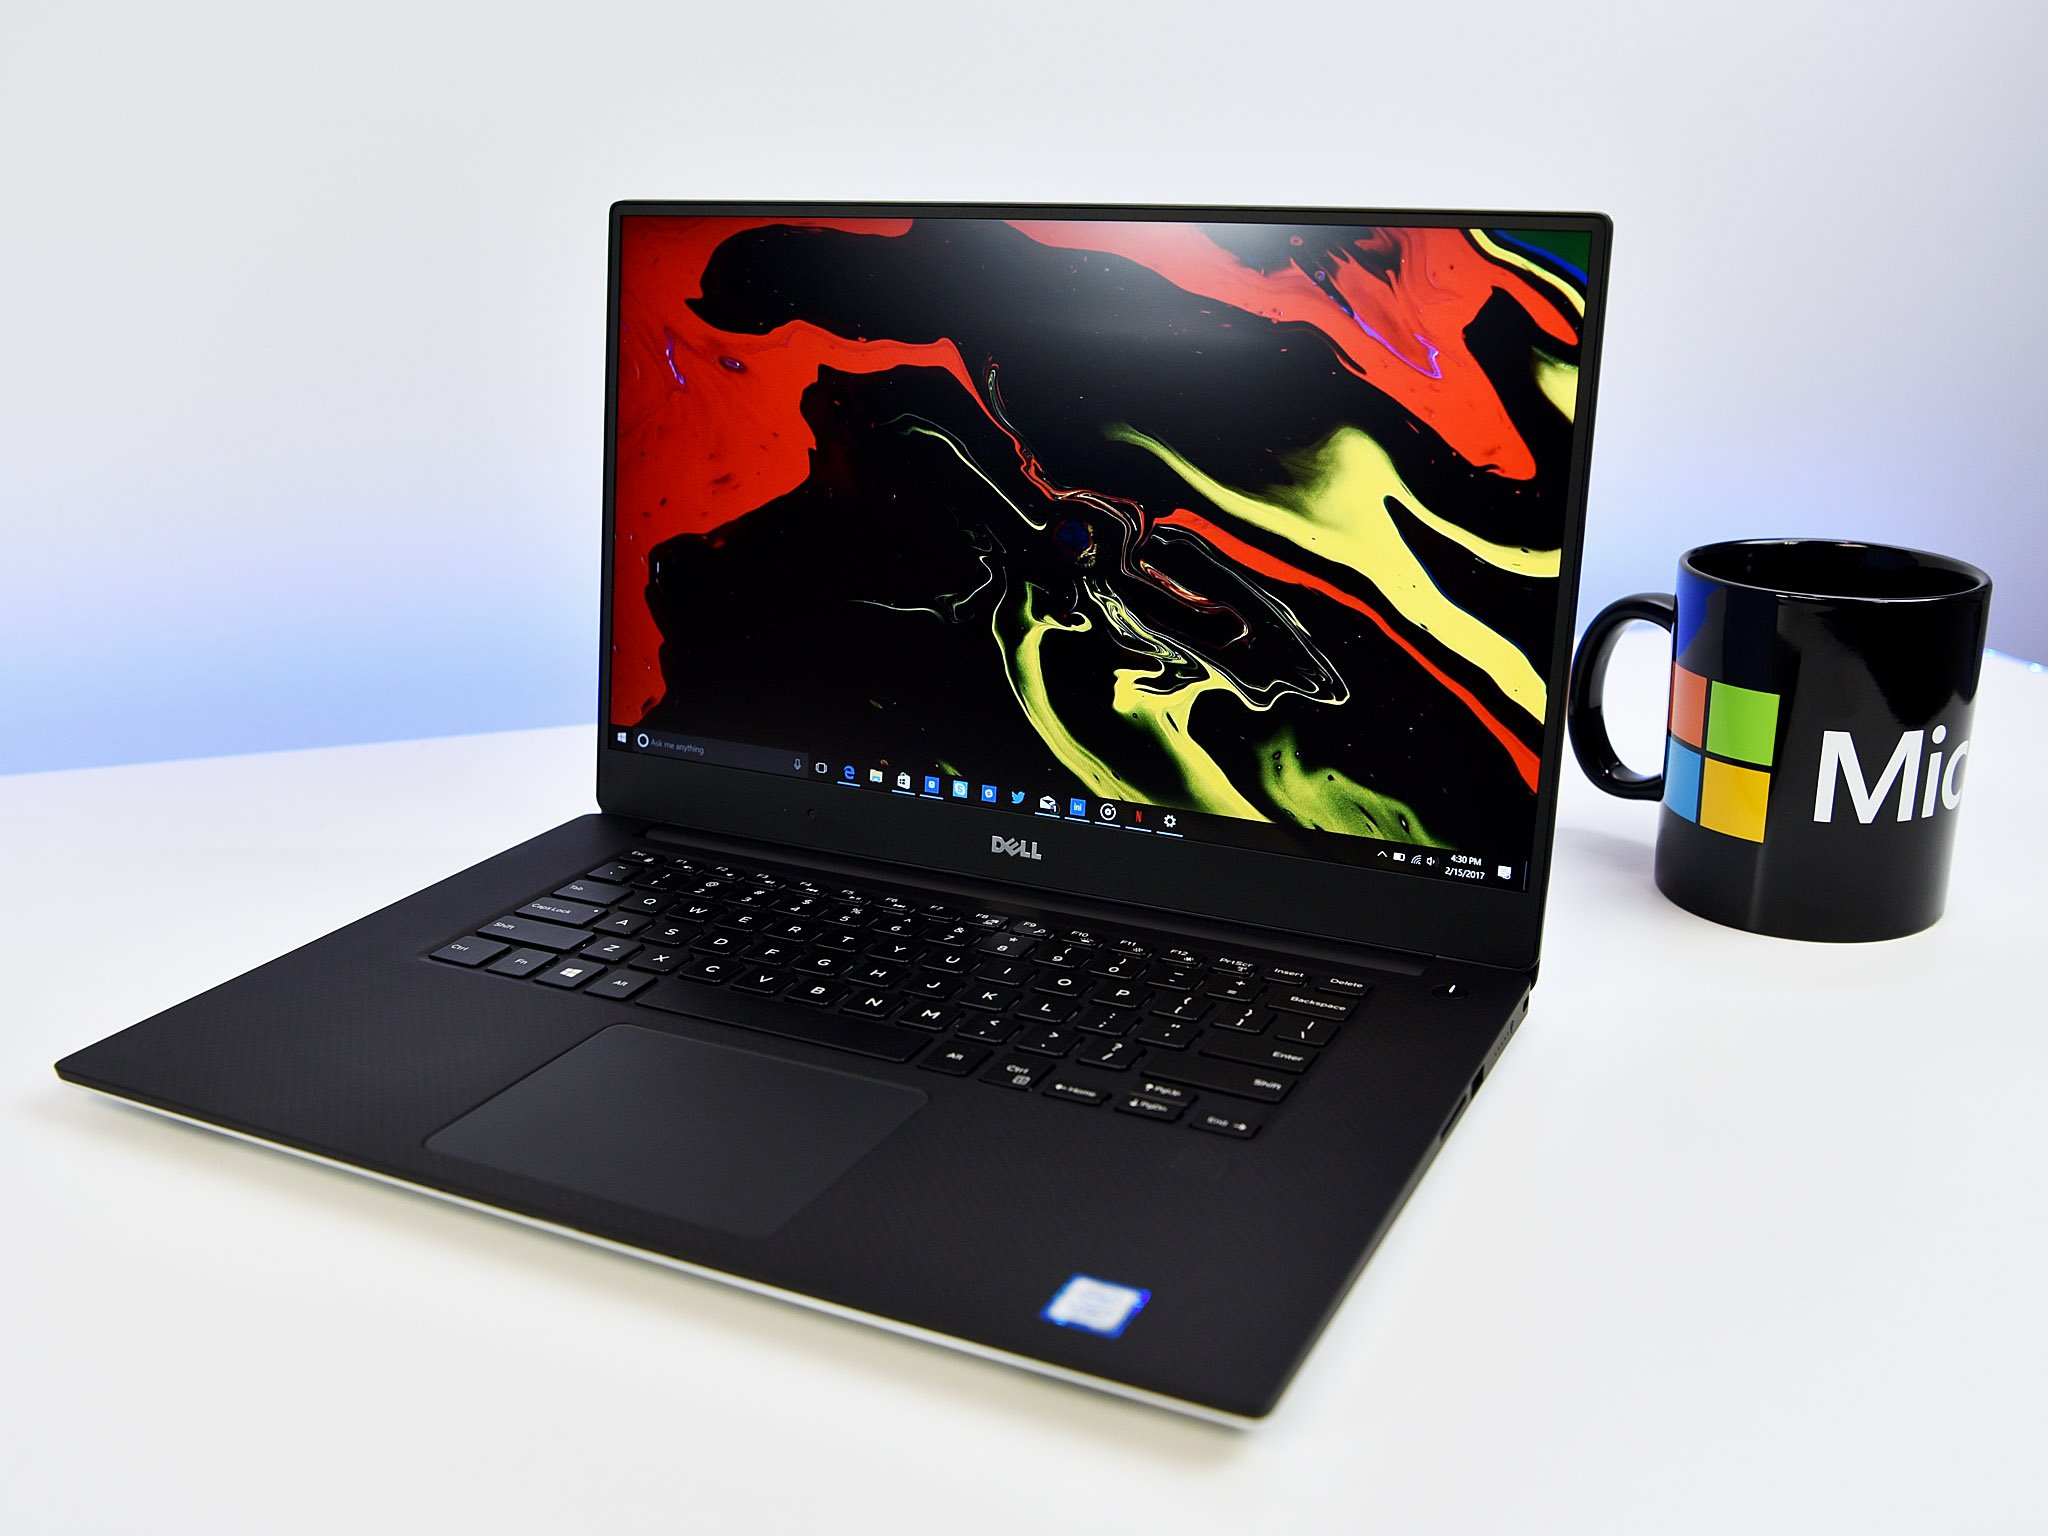 dell xps 15 review 9560